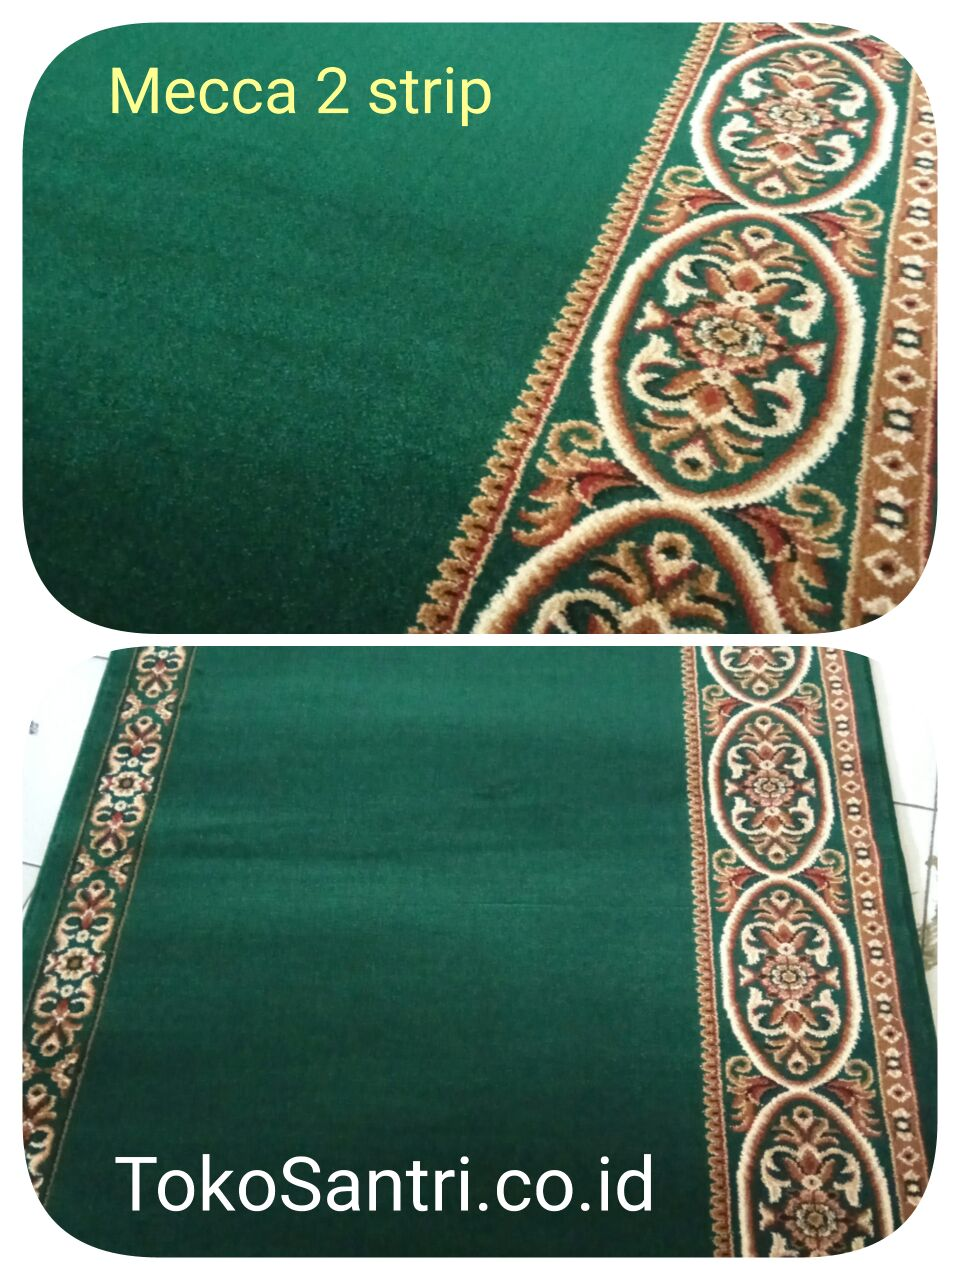 KARPET RAJAKHAN SATU STRIP